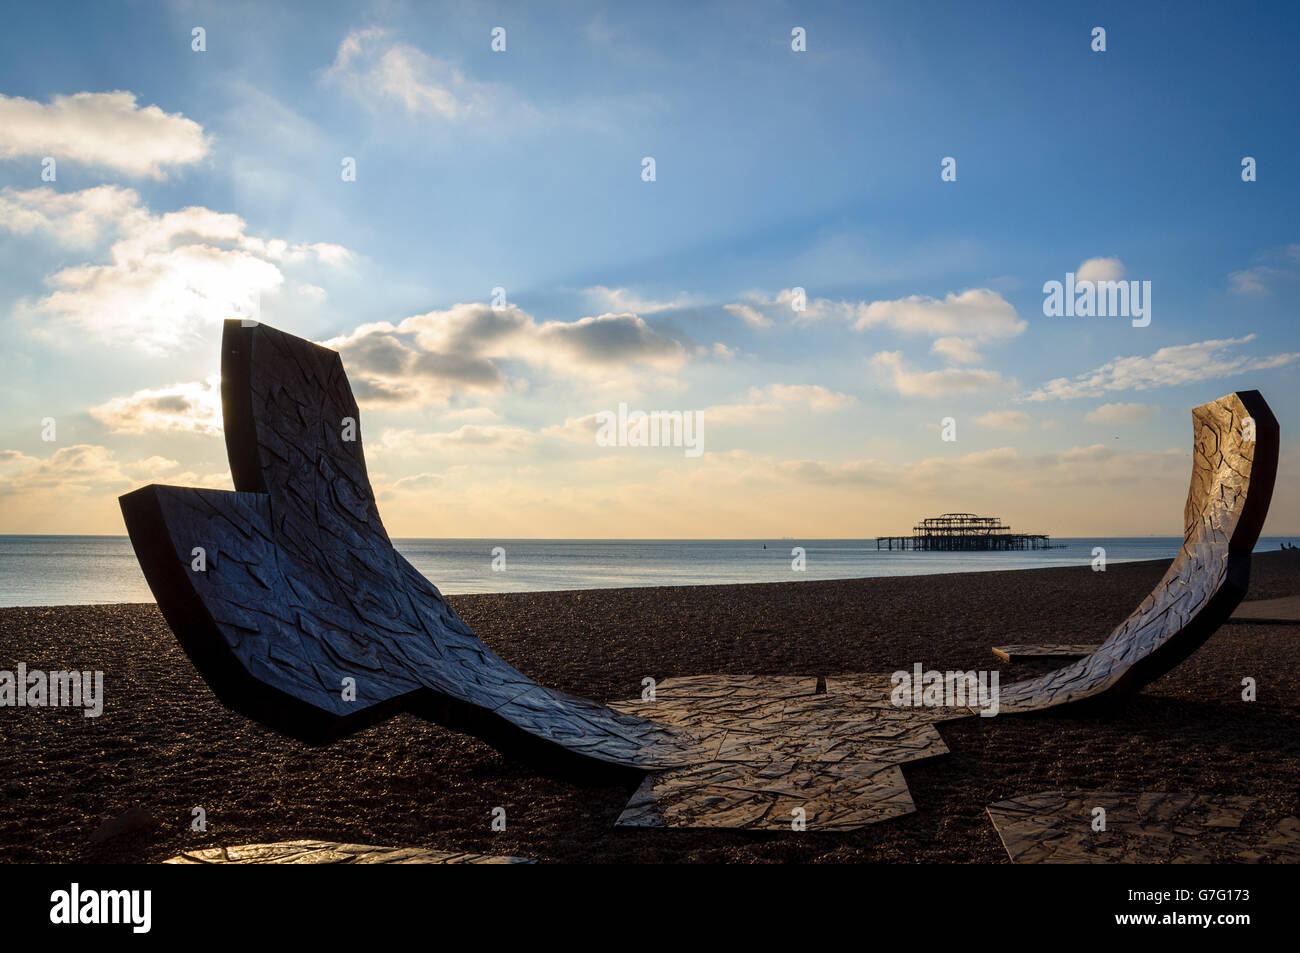 Abstract sculpture by Charles Hadcock on Brighton beach in England, UK. West Pier in the background. November 2010. Stock Photo